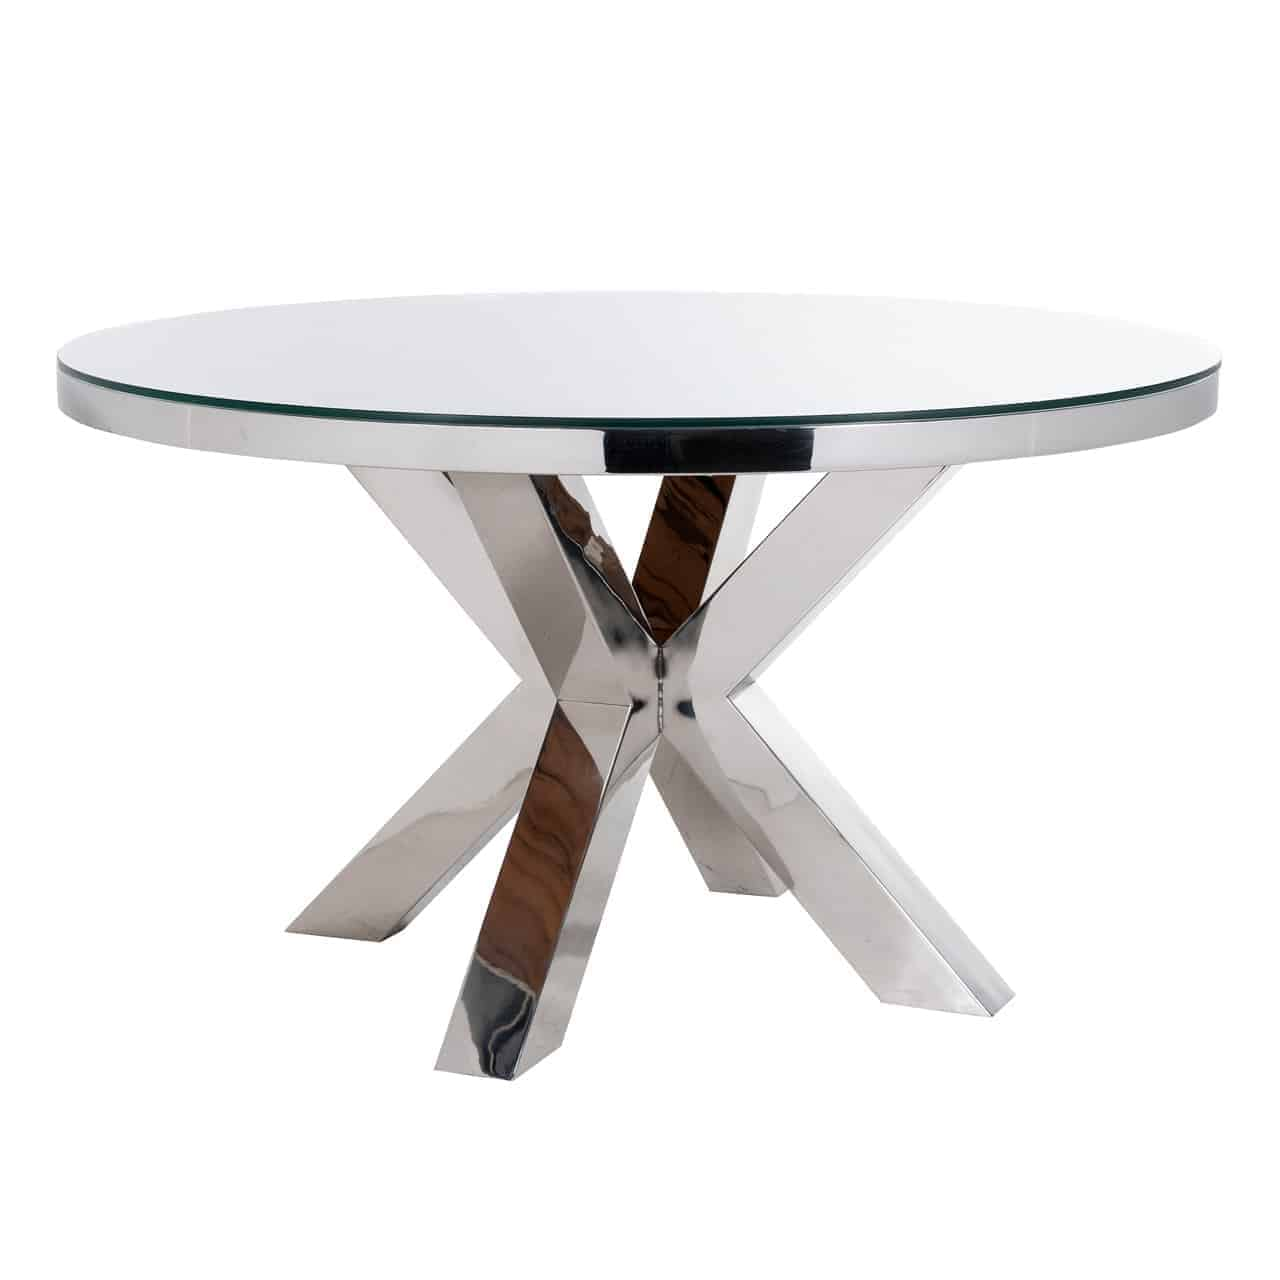 Dining table Kensington around 140Ø incl.glass (Silver)